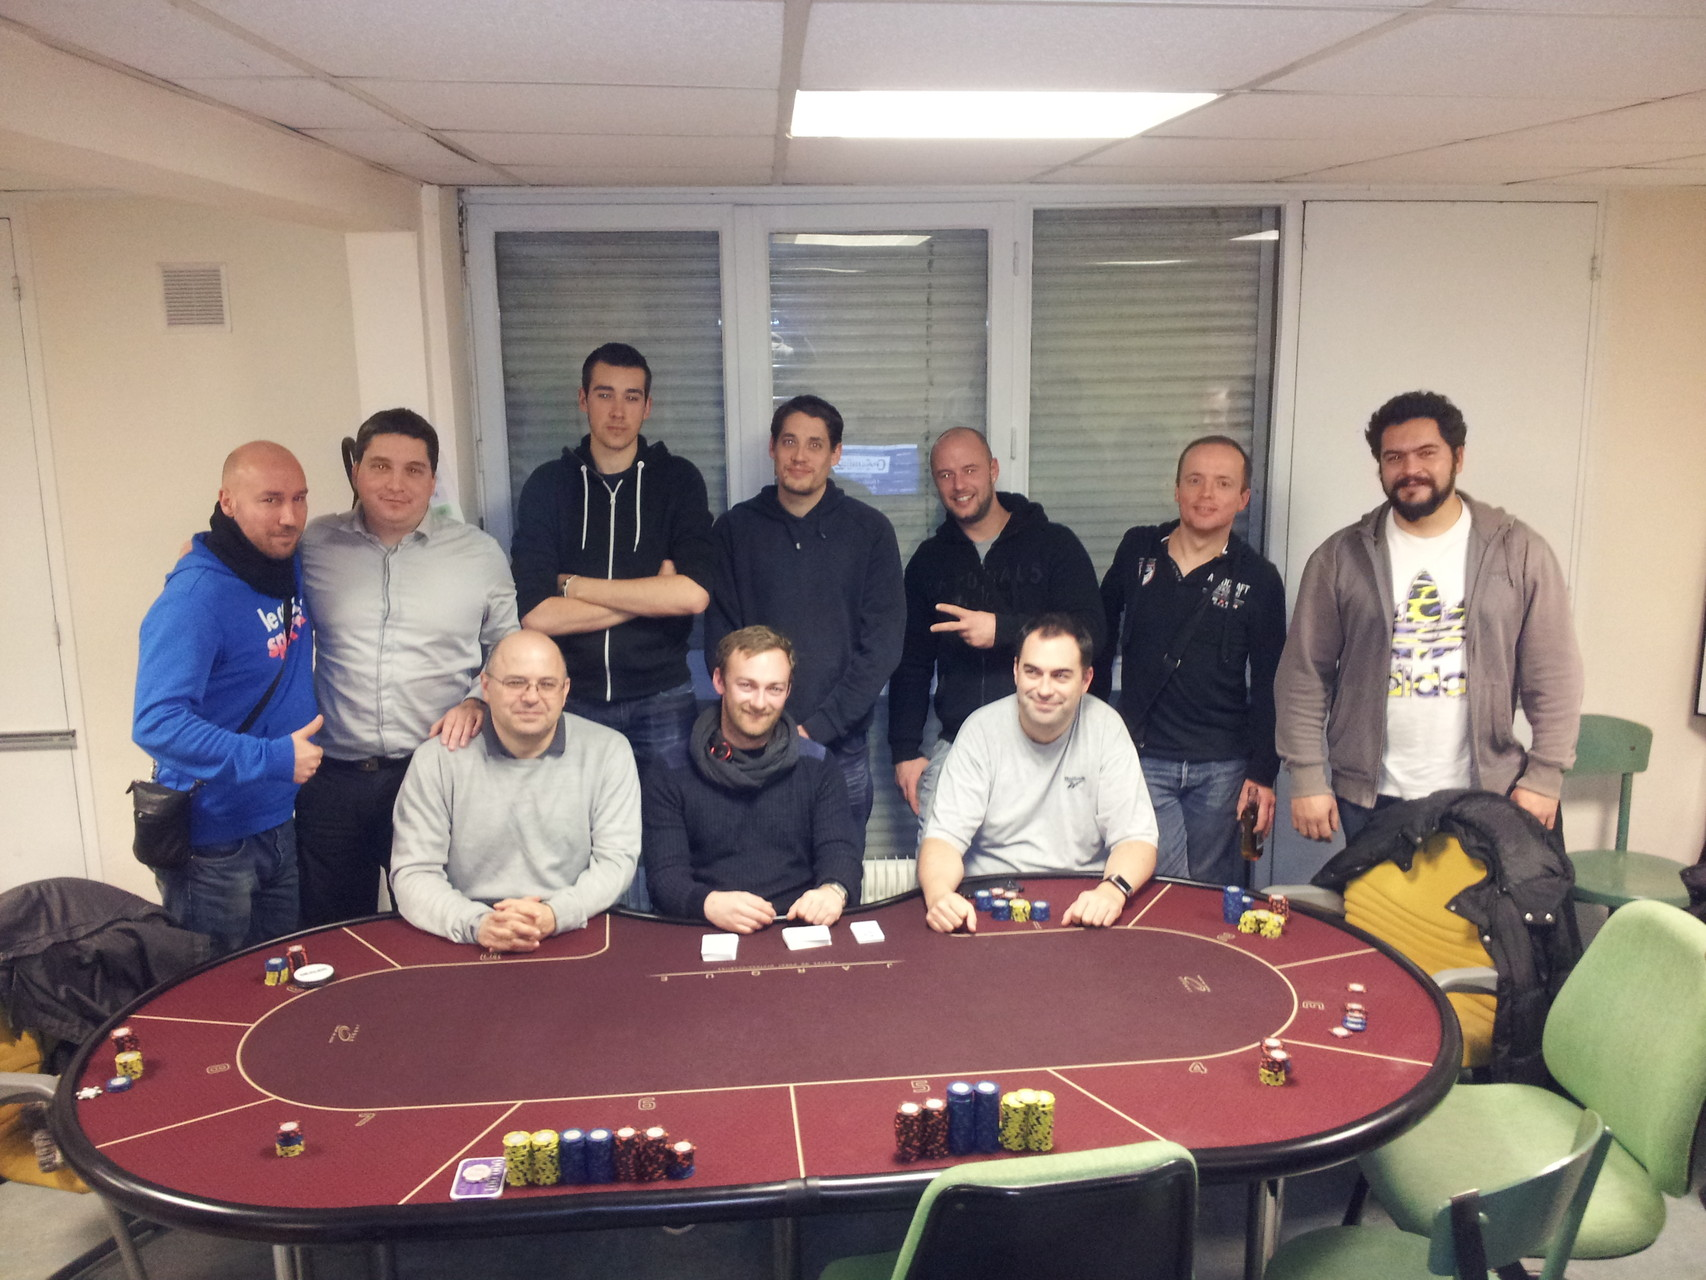 MTT05 20151204 --- Winner Payou --- Runner-Up Beubeu --- Podium Chetemi59